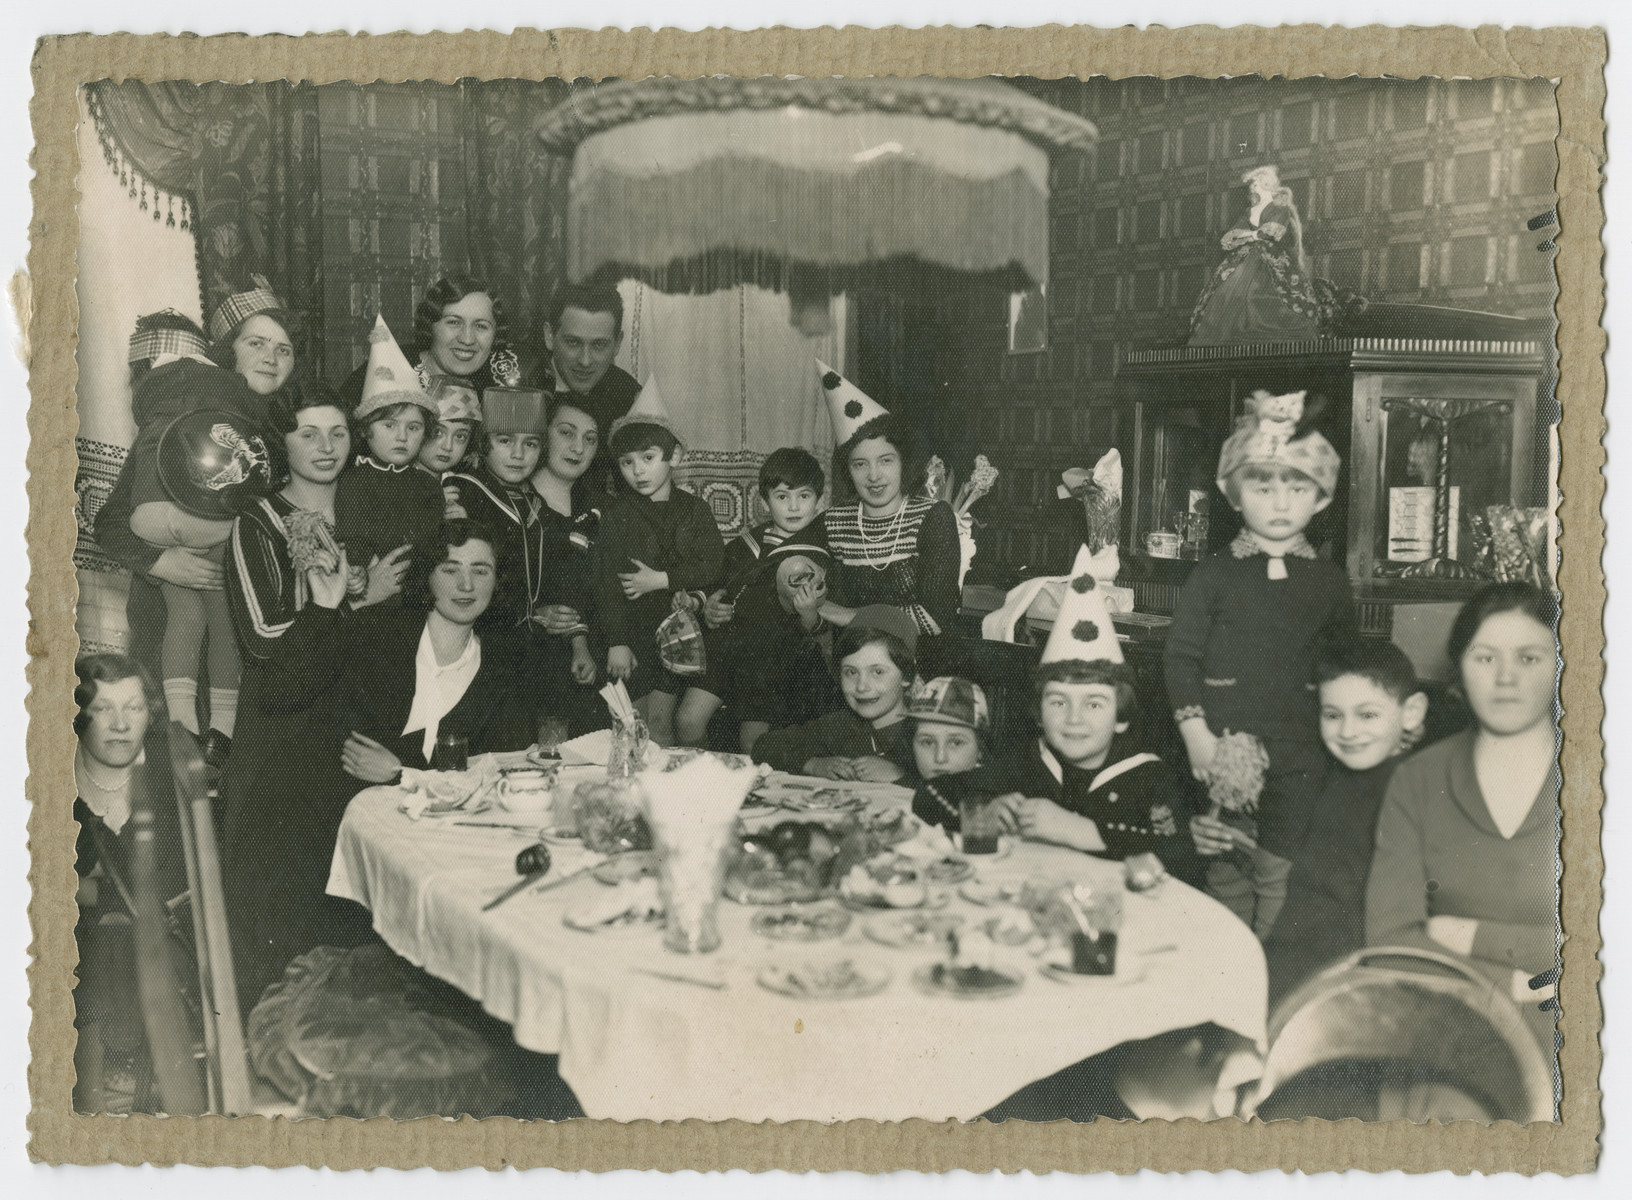 Children and women gather by a festive table for a celebration [possibly a birthday].